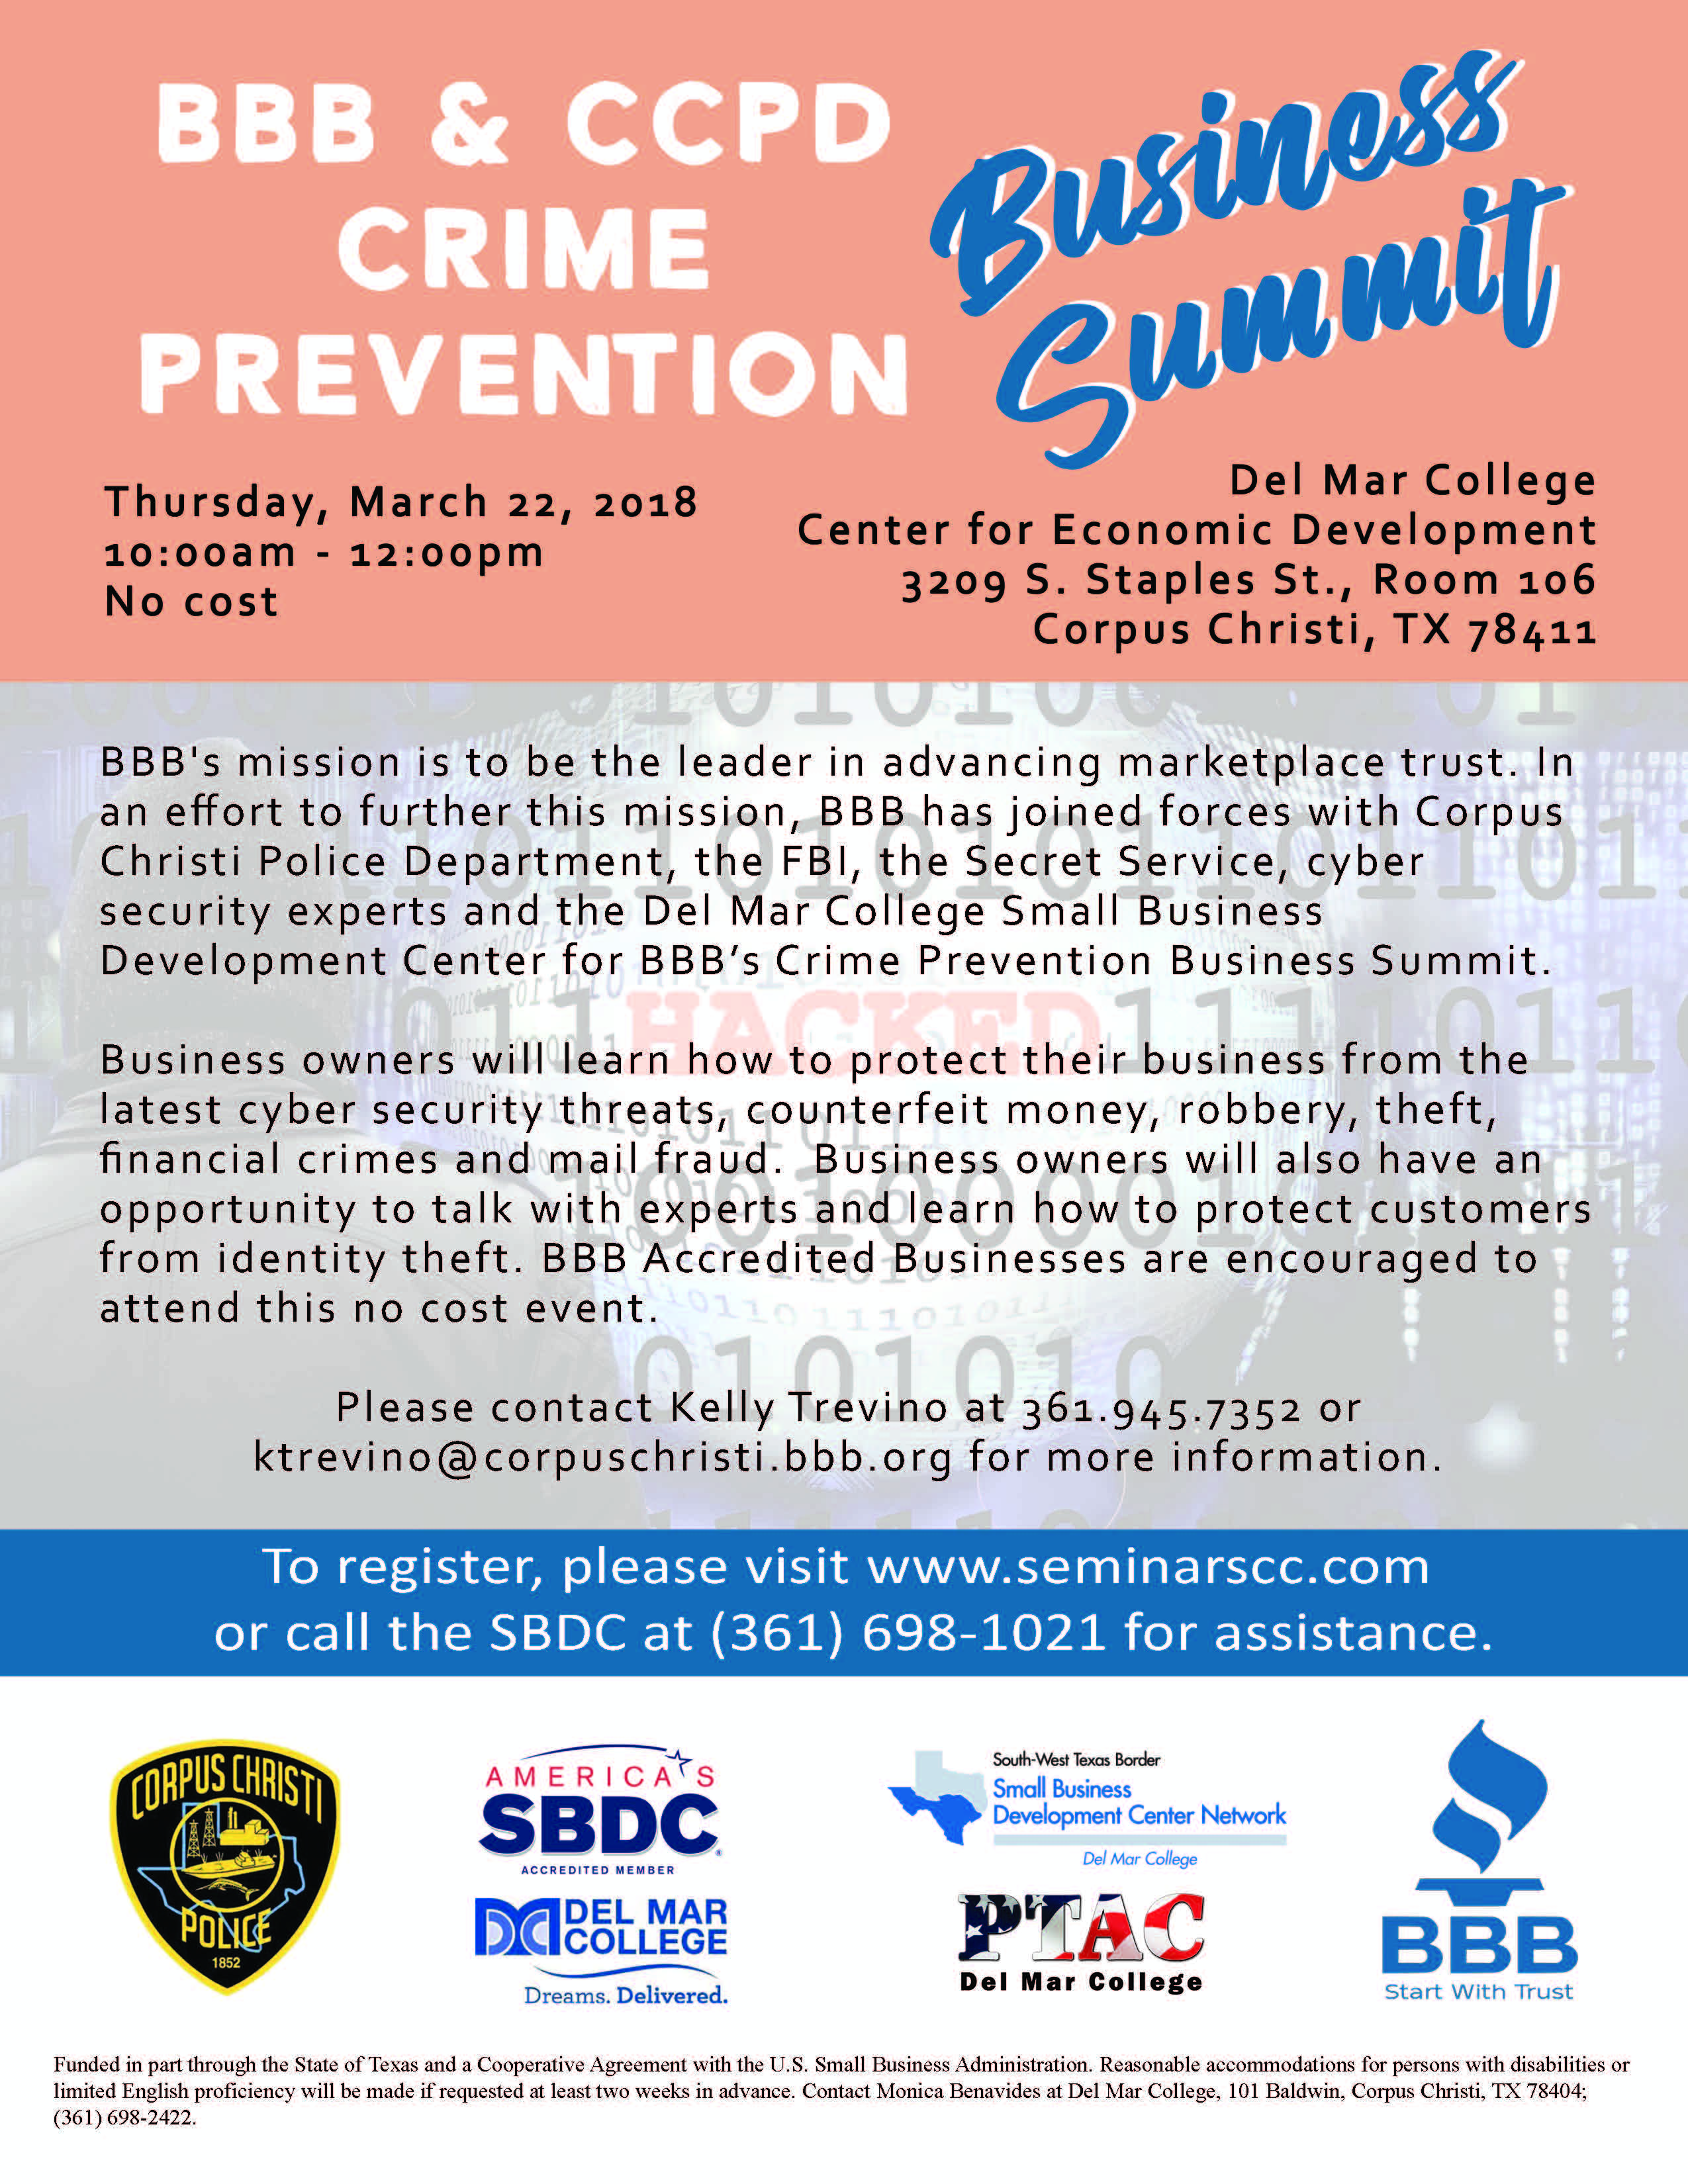 Flyer 20  20bbb 20  20ccpd 20crime 20prevention 20business 20summit 202018.03.22